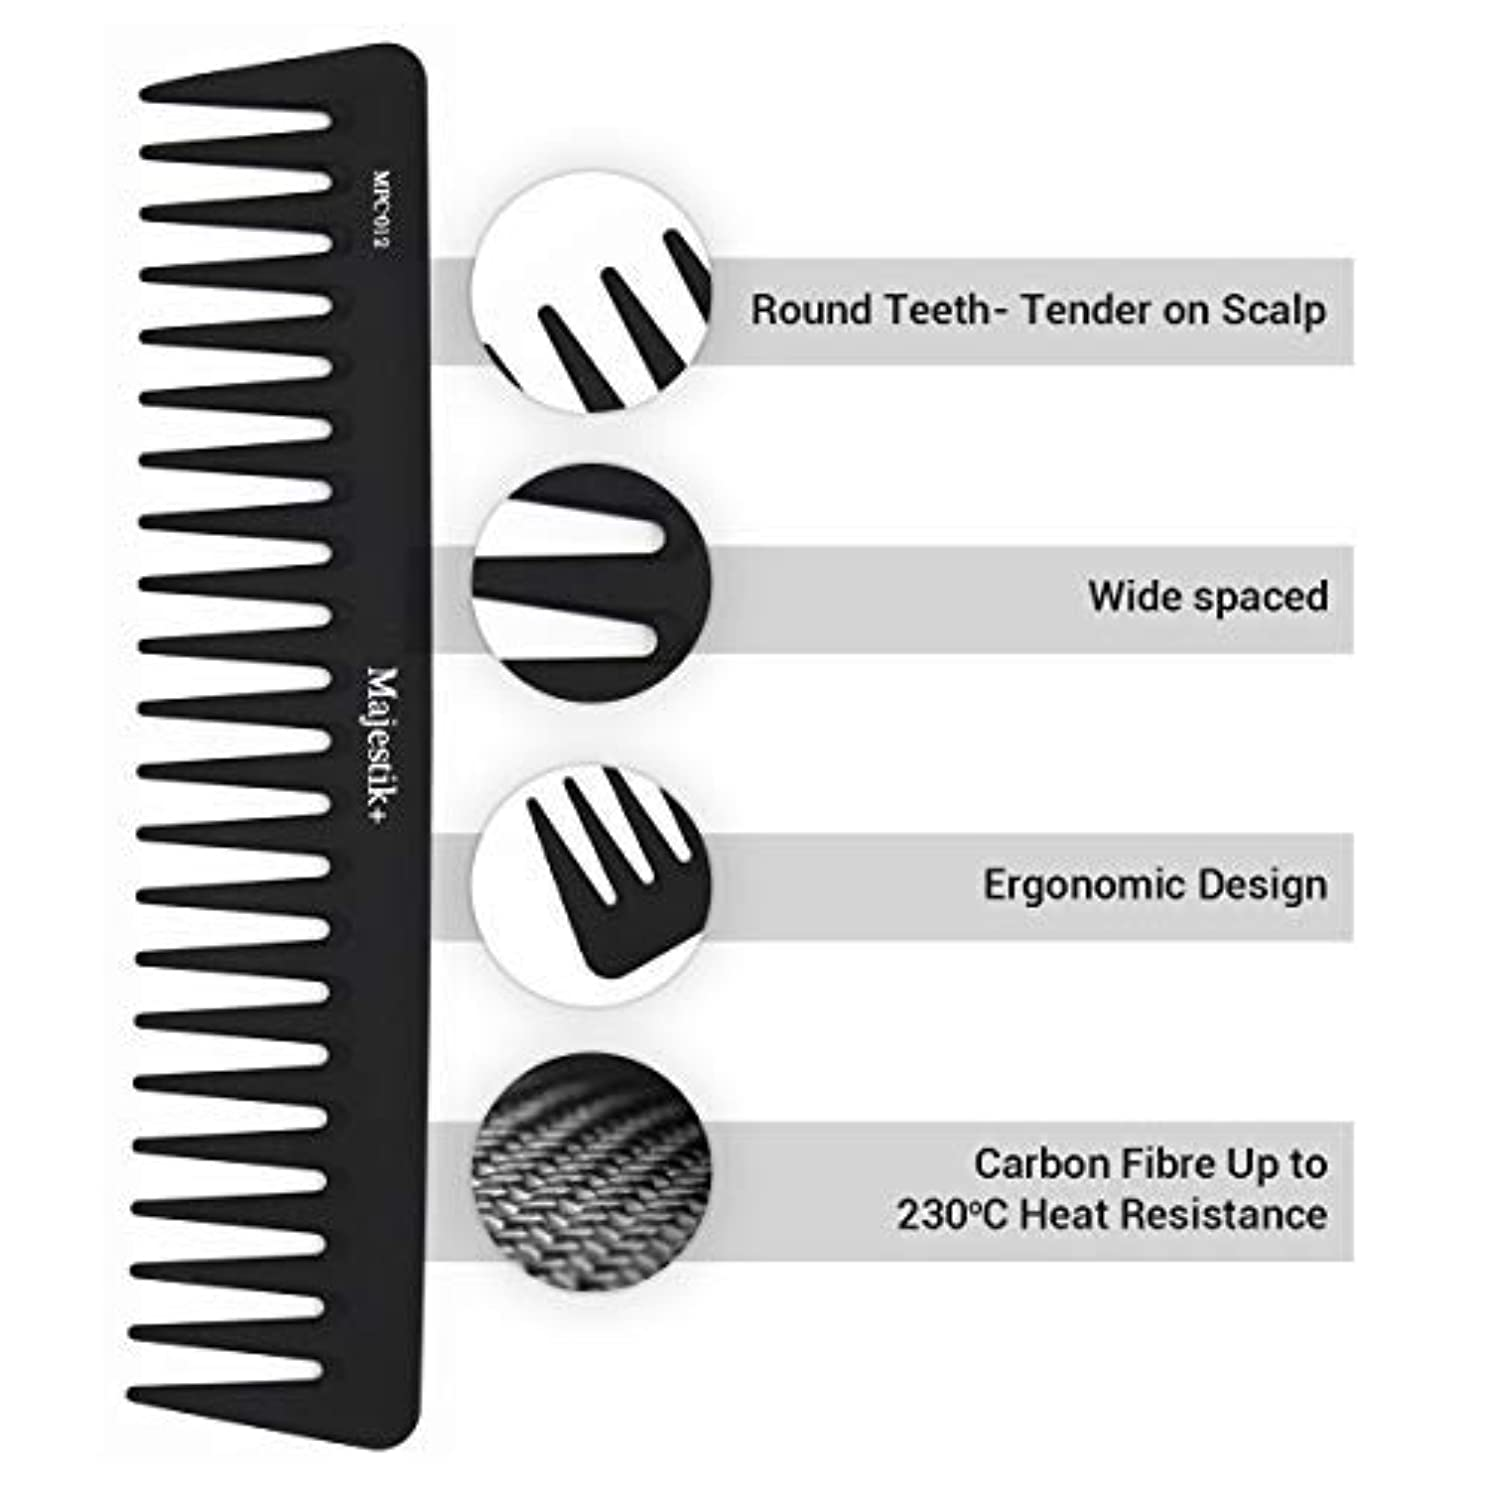 高いダーリン噛むWide Tooth Comb- a Professional Carbon Fibre Hair Comb by Majestik+, Anti-Static, Strength & Durability, in Black...